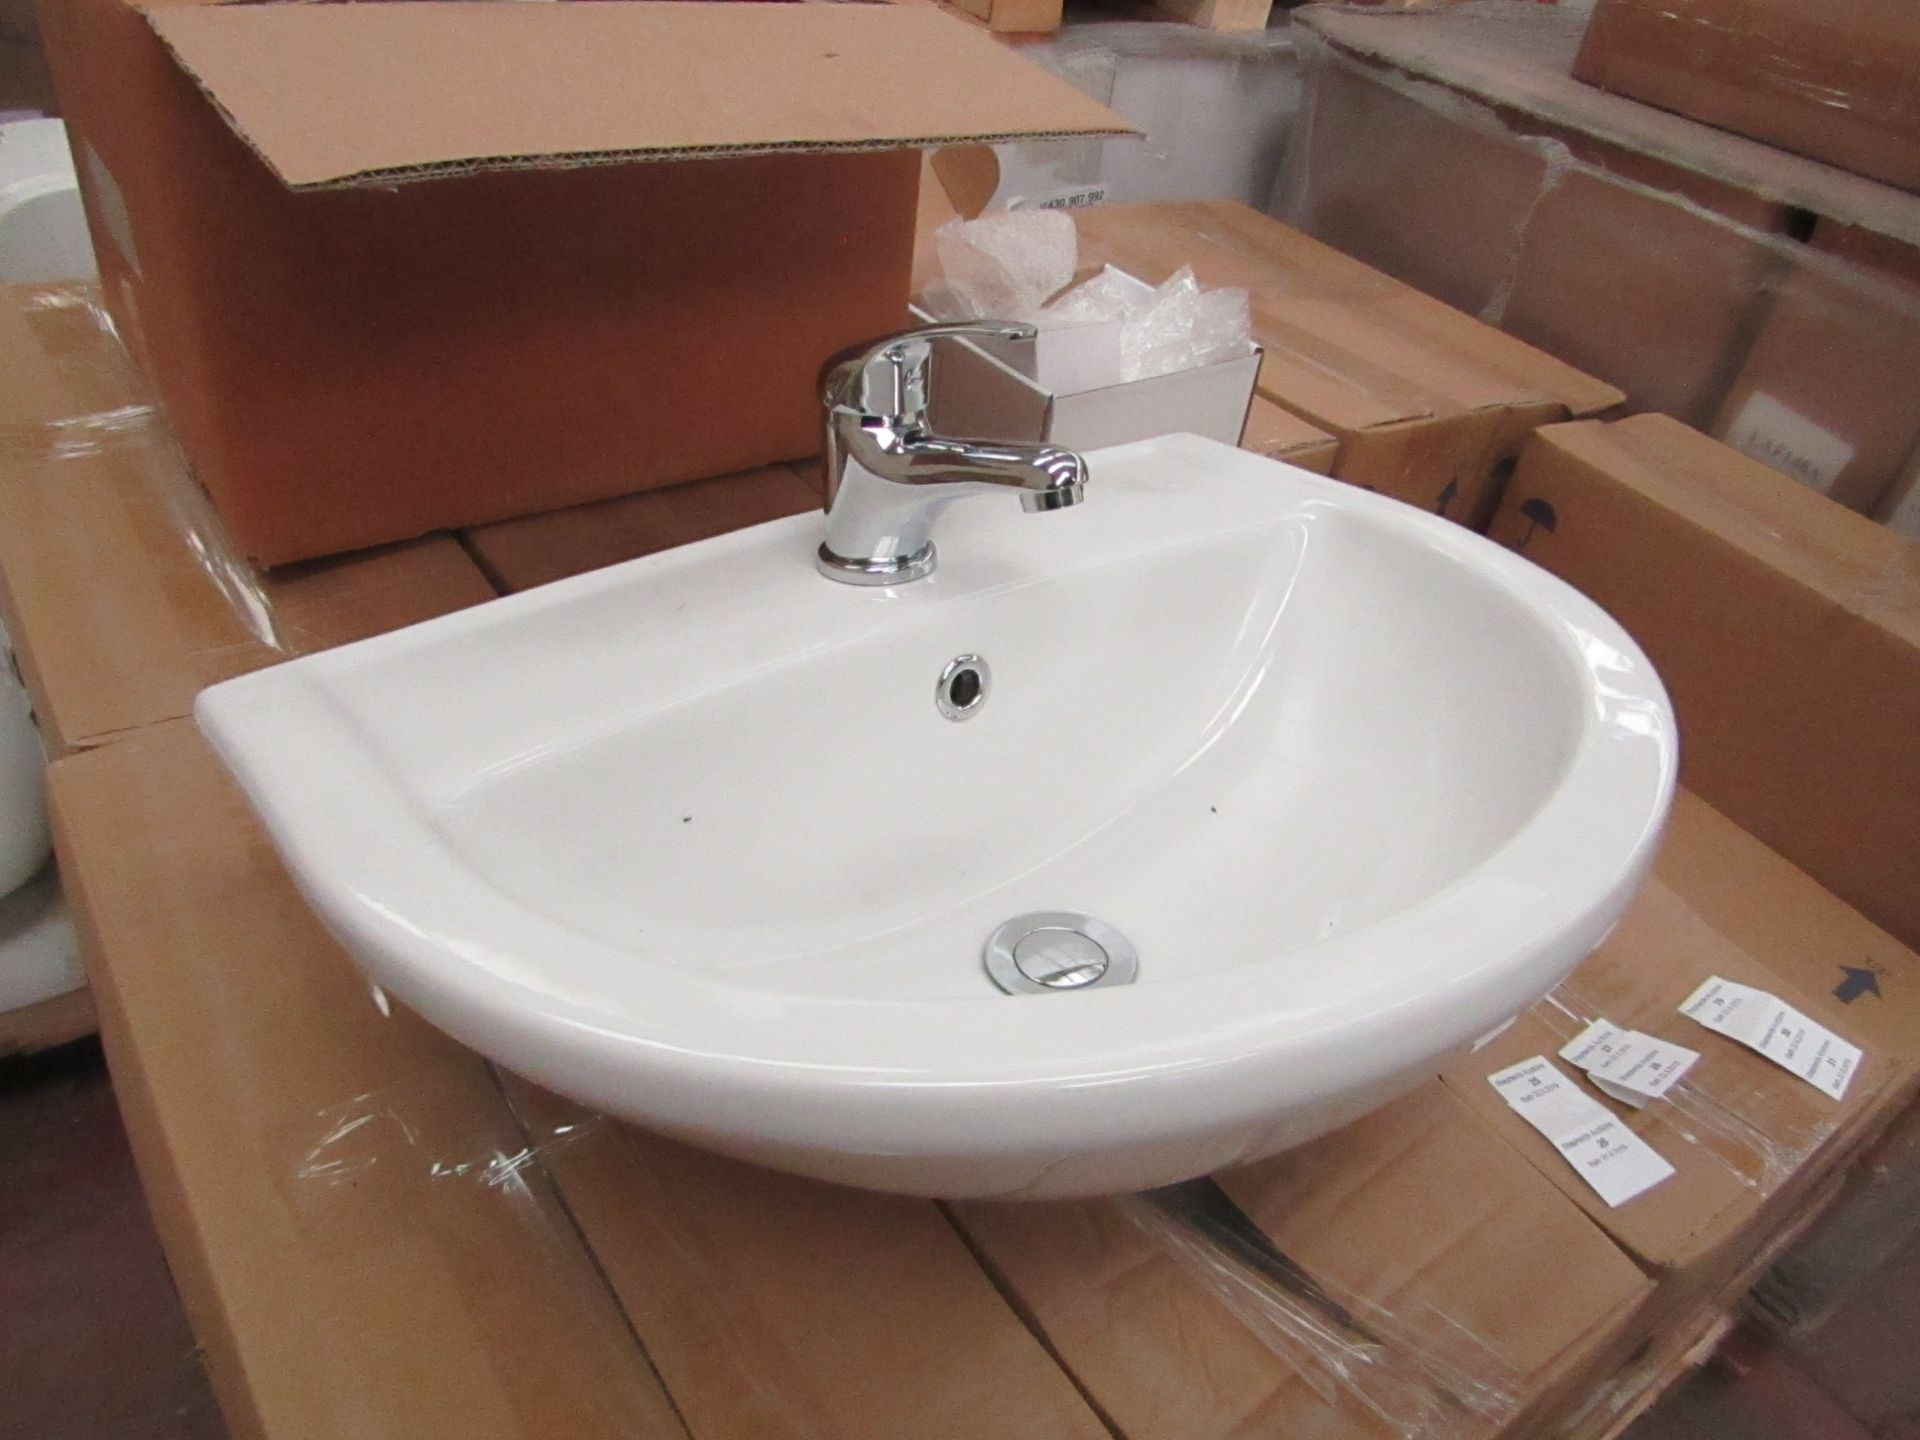 Lotto 26 - Lecico Remini 50cm 1 tap hole sink with mono block mixer tap, boxed and new